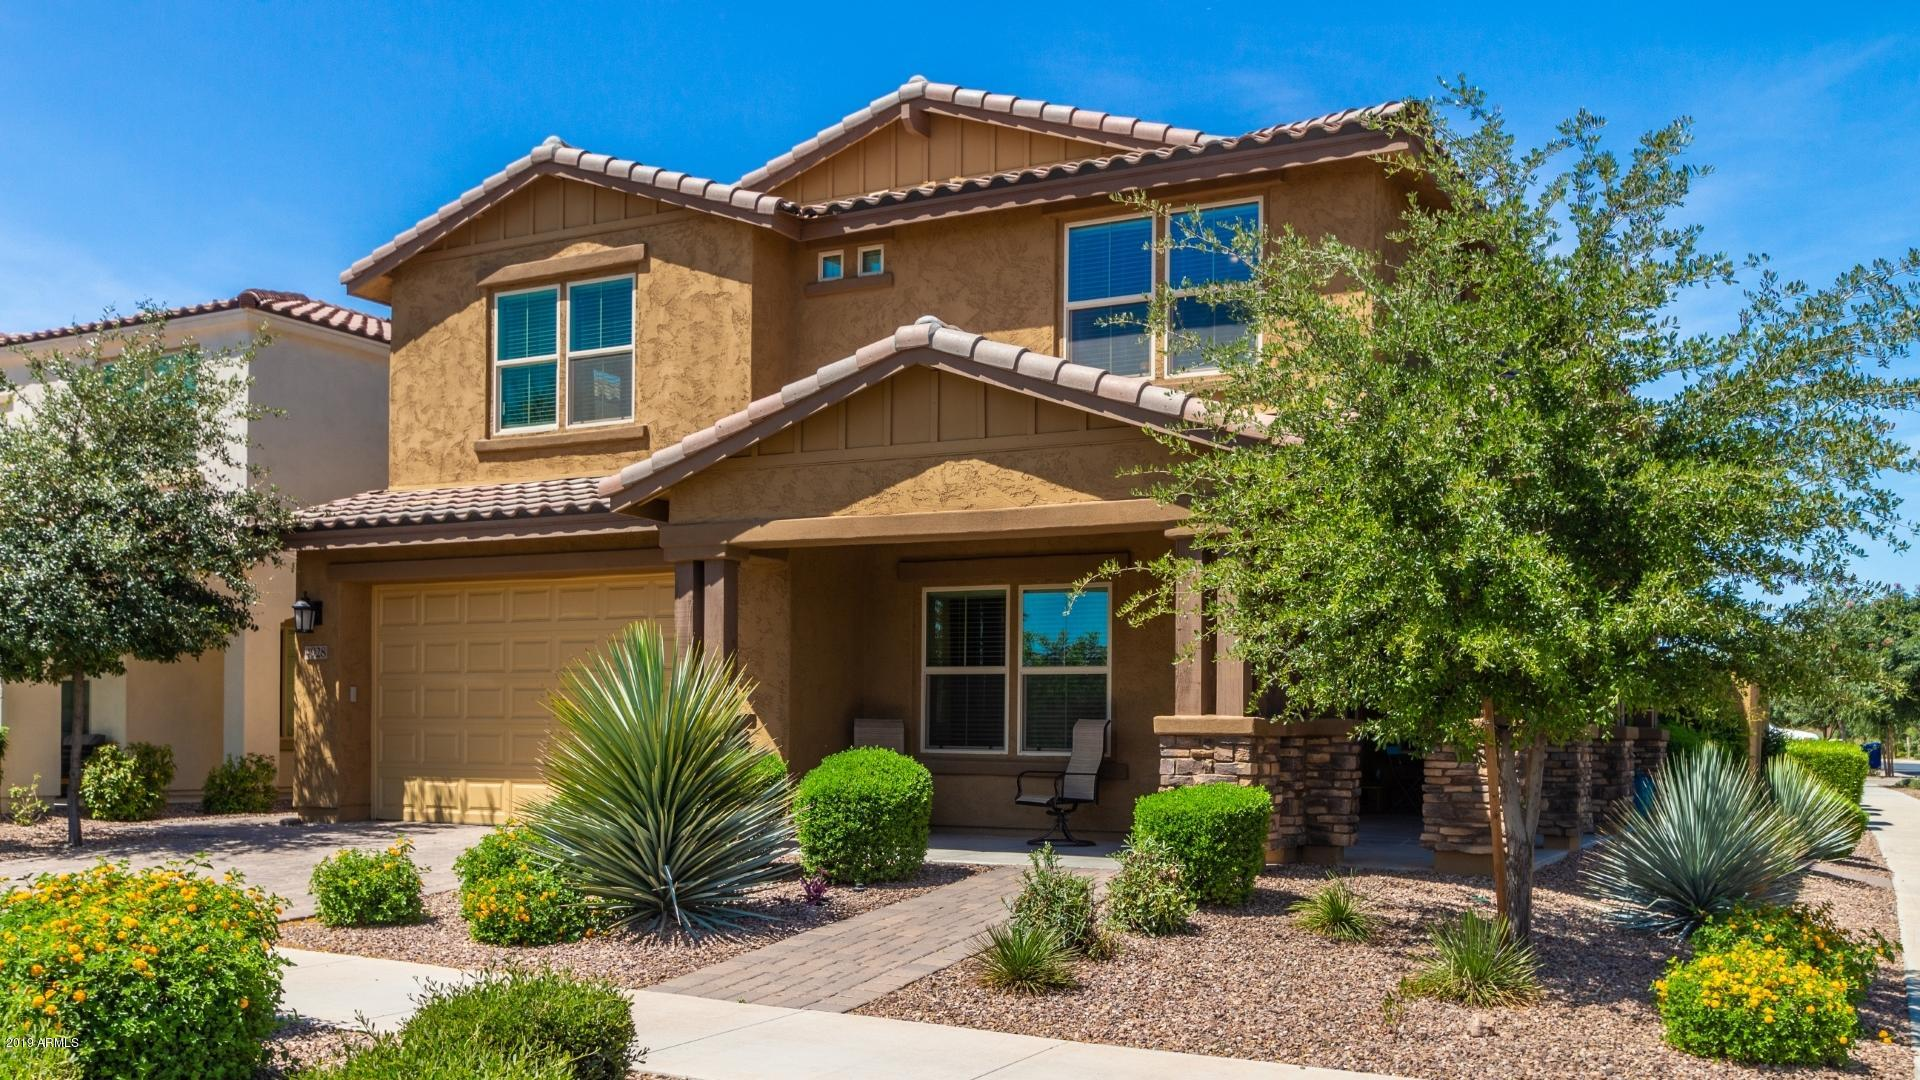 Photo of 4928 S DASSAULT Way, Mesa, AZ 85212